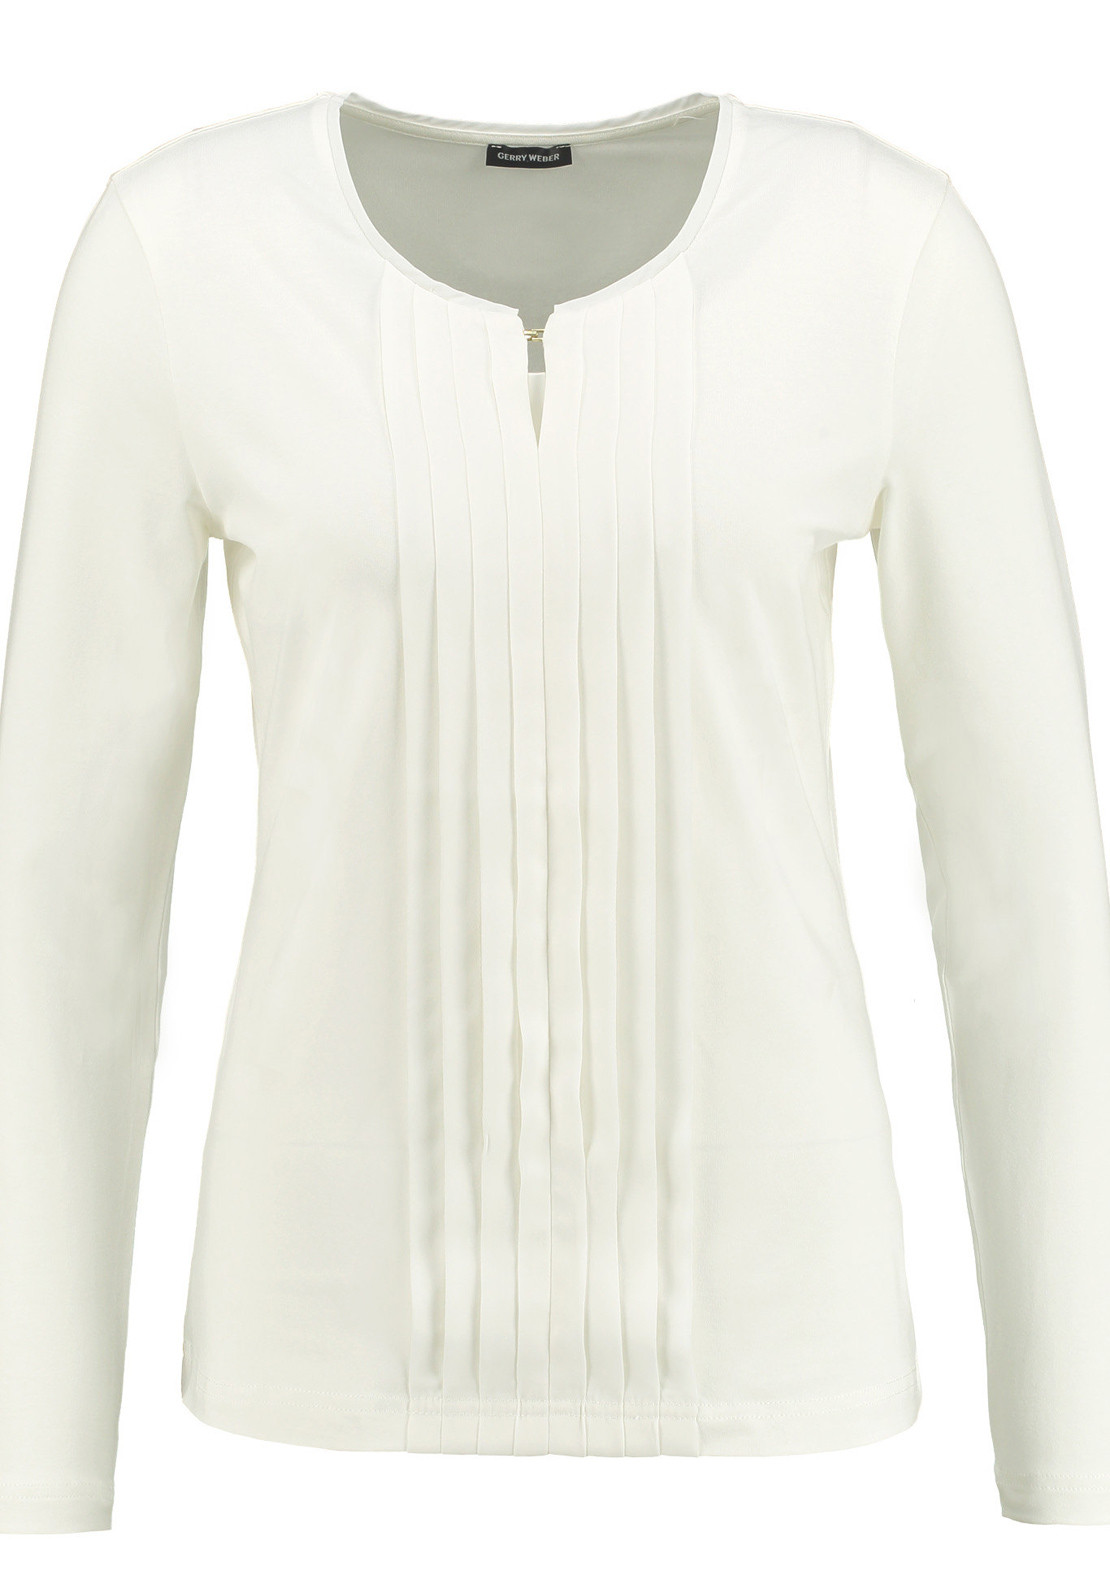 Gerry Weber Pleated Panel Long Sleeve T-Shirt, Ivory